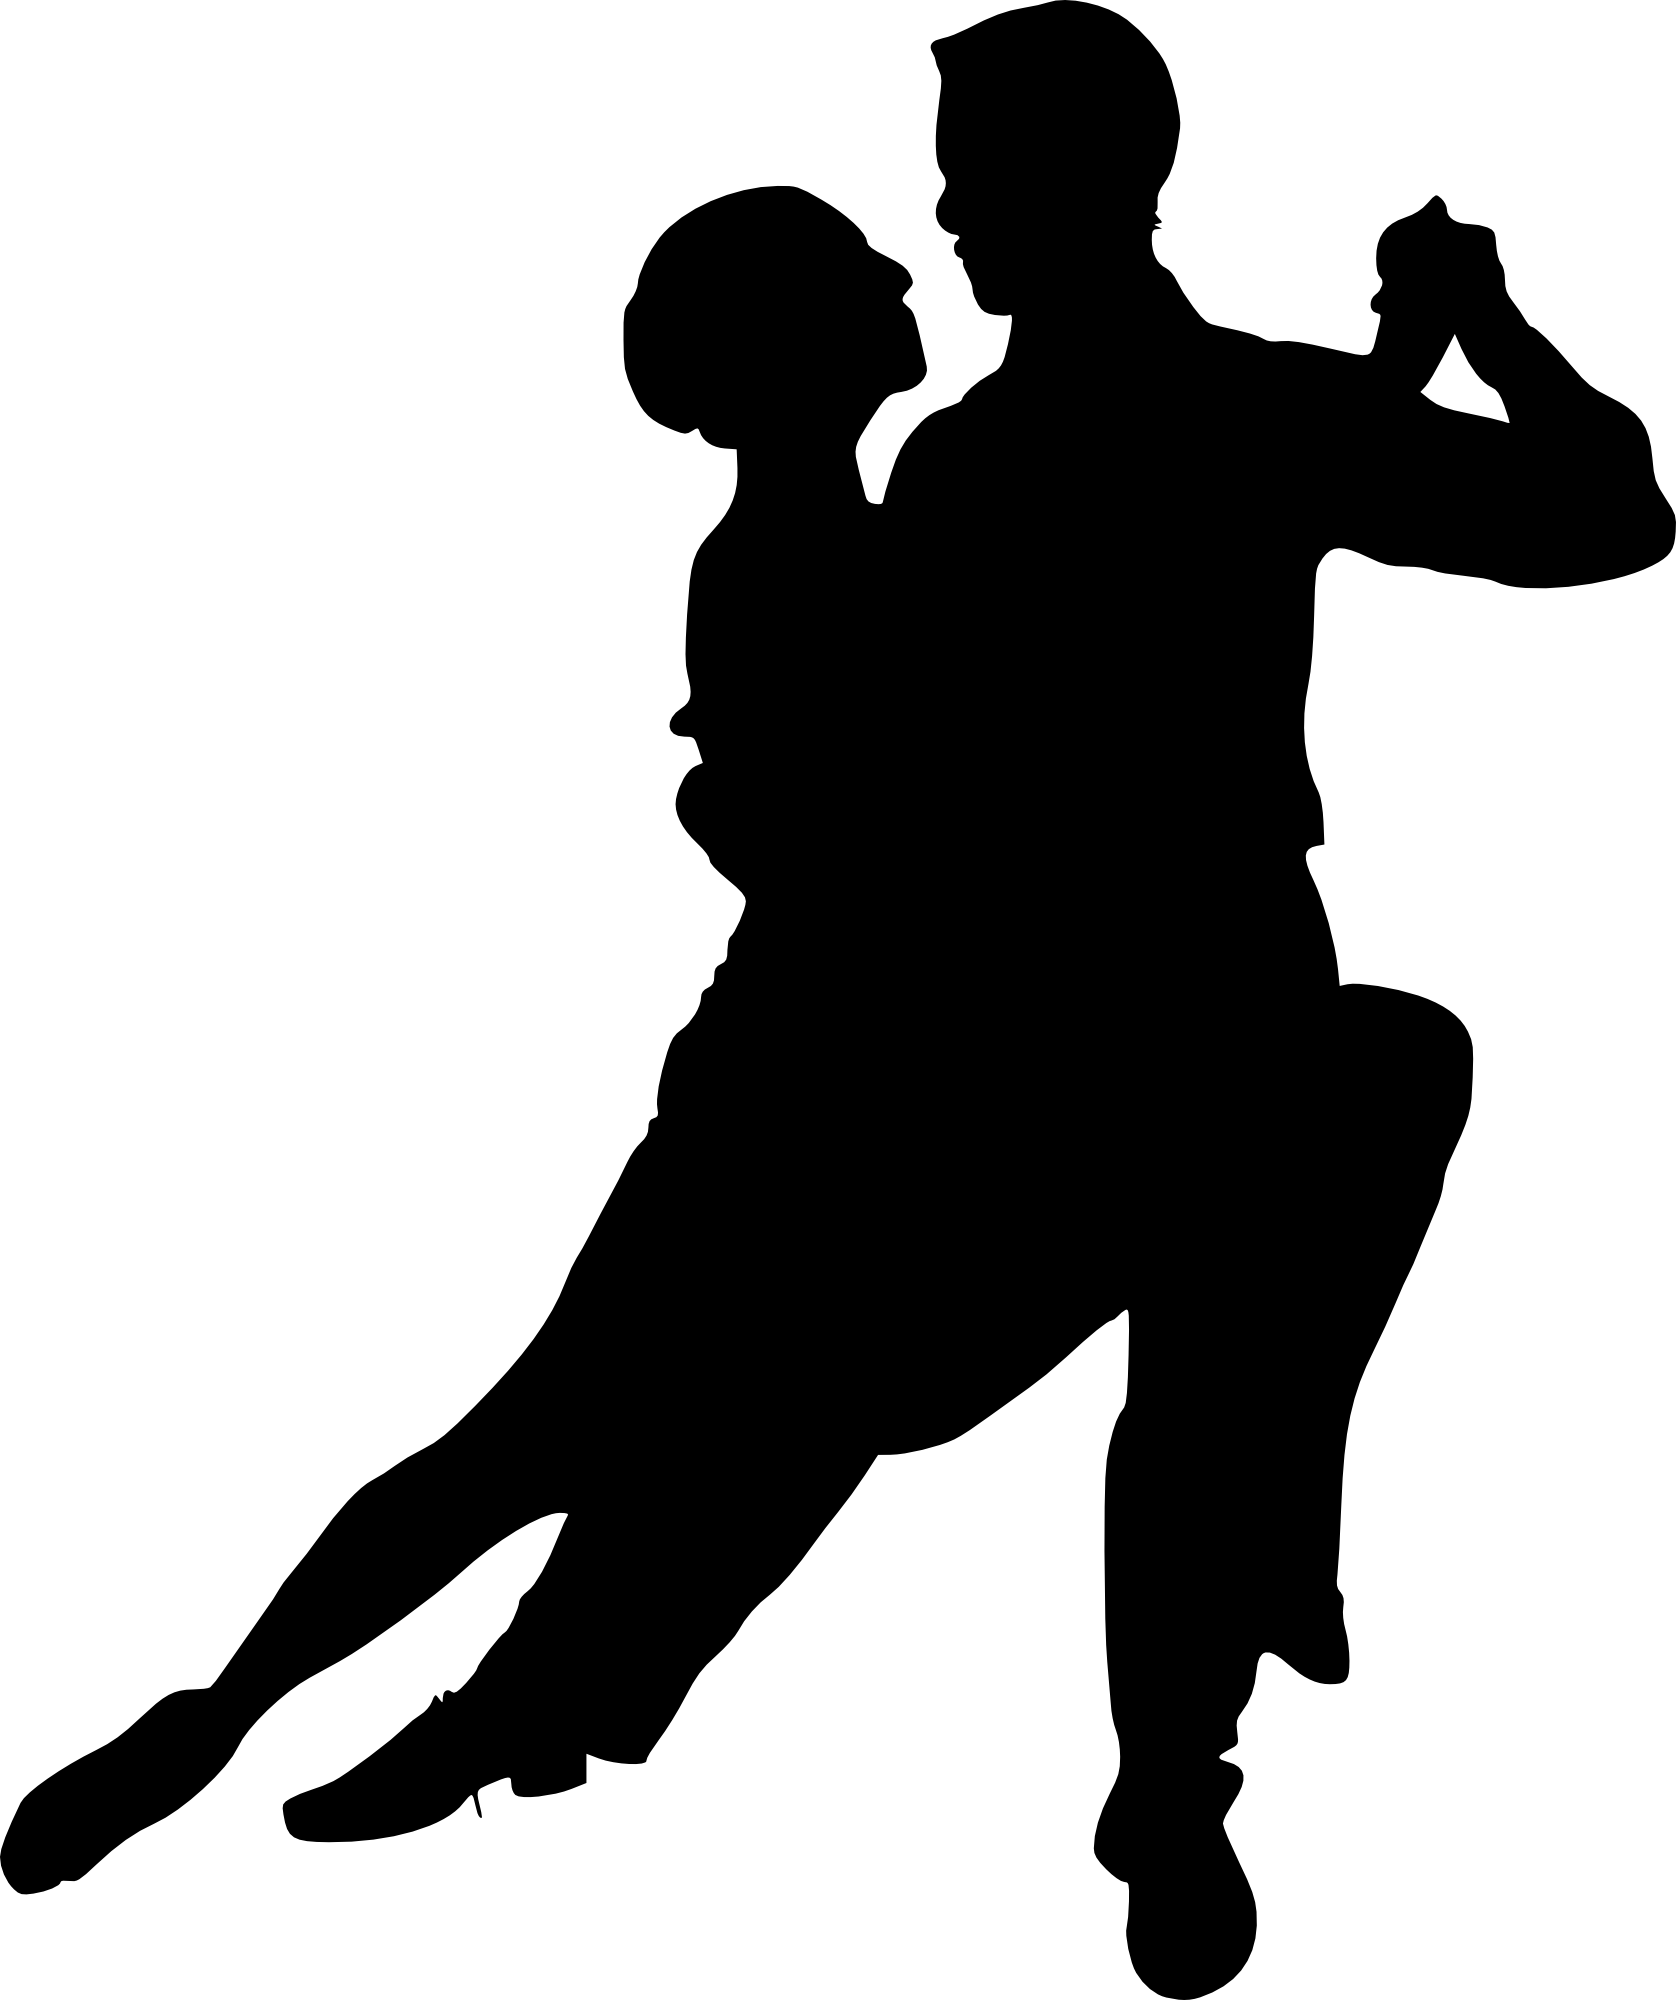 Dance clipart solo dance. Silhouette at getdrawings com